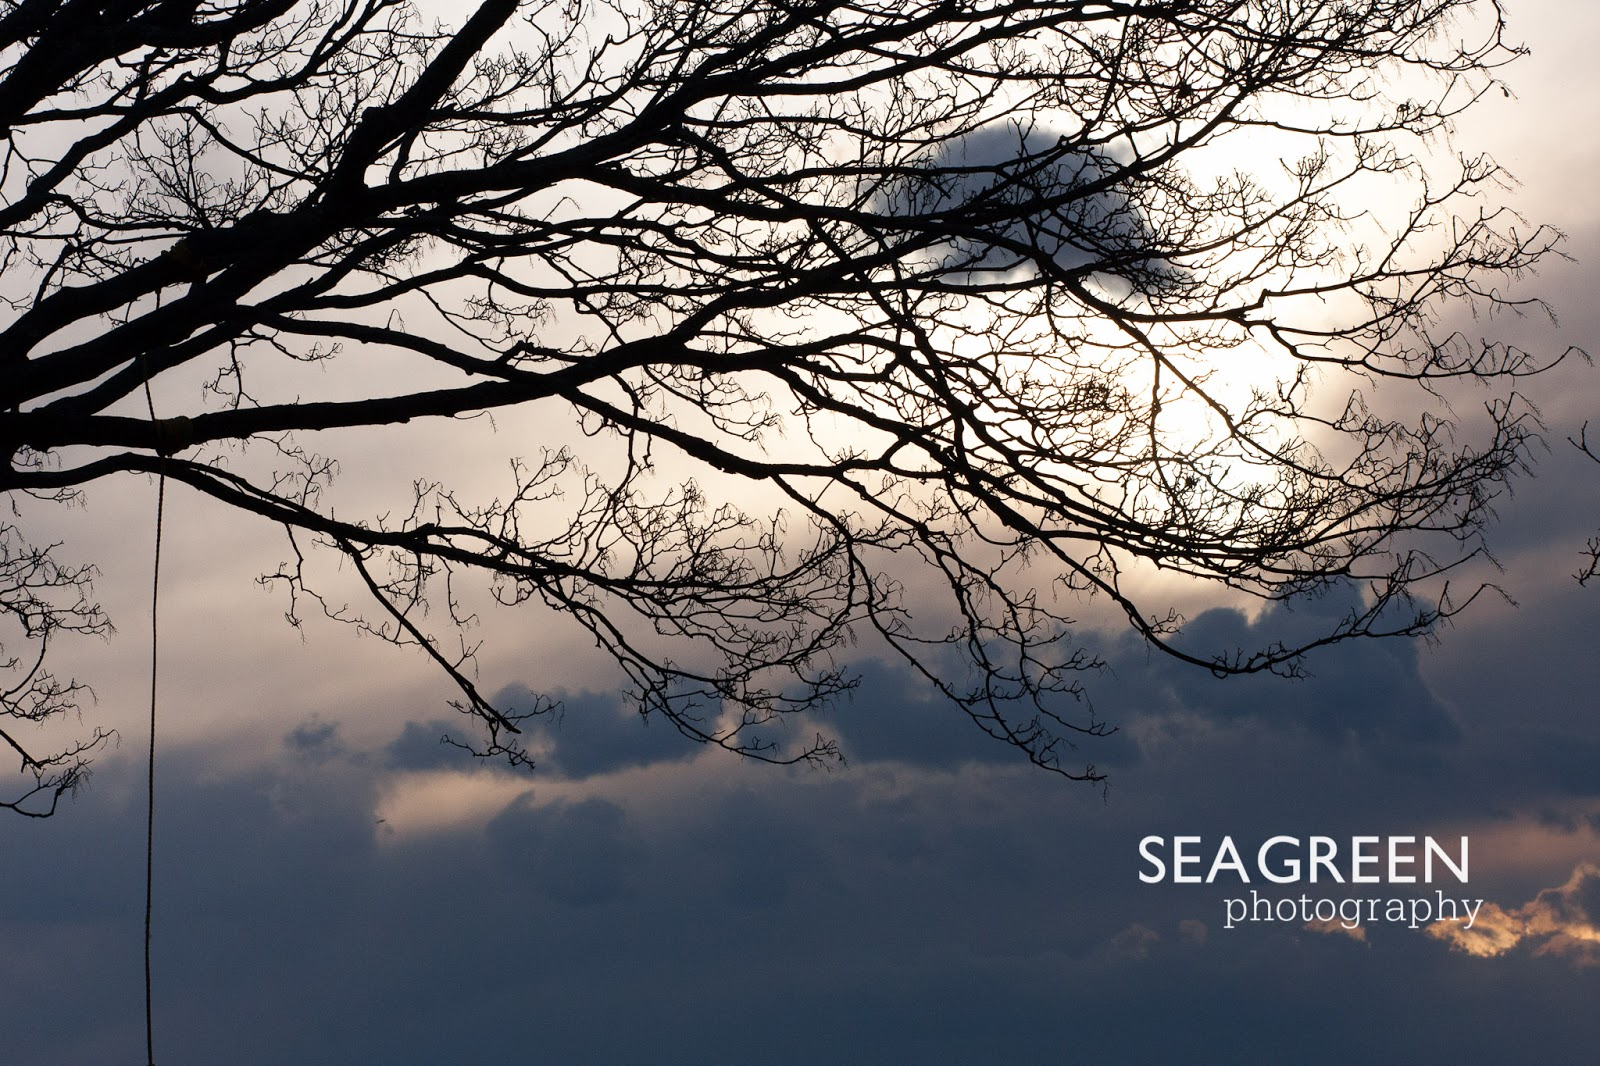 Tree Swing Silhouette - Sea Green Photography Rhode Island